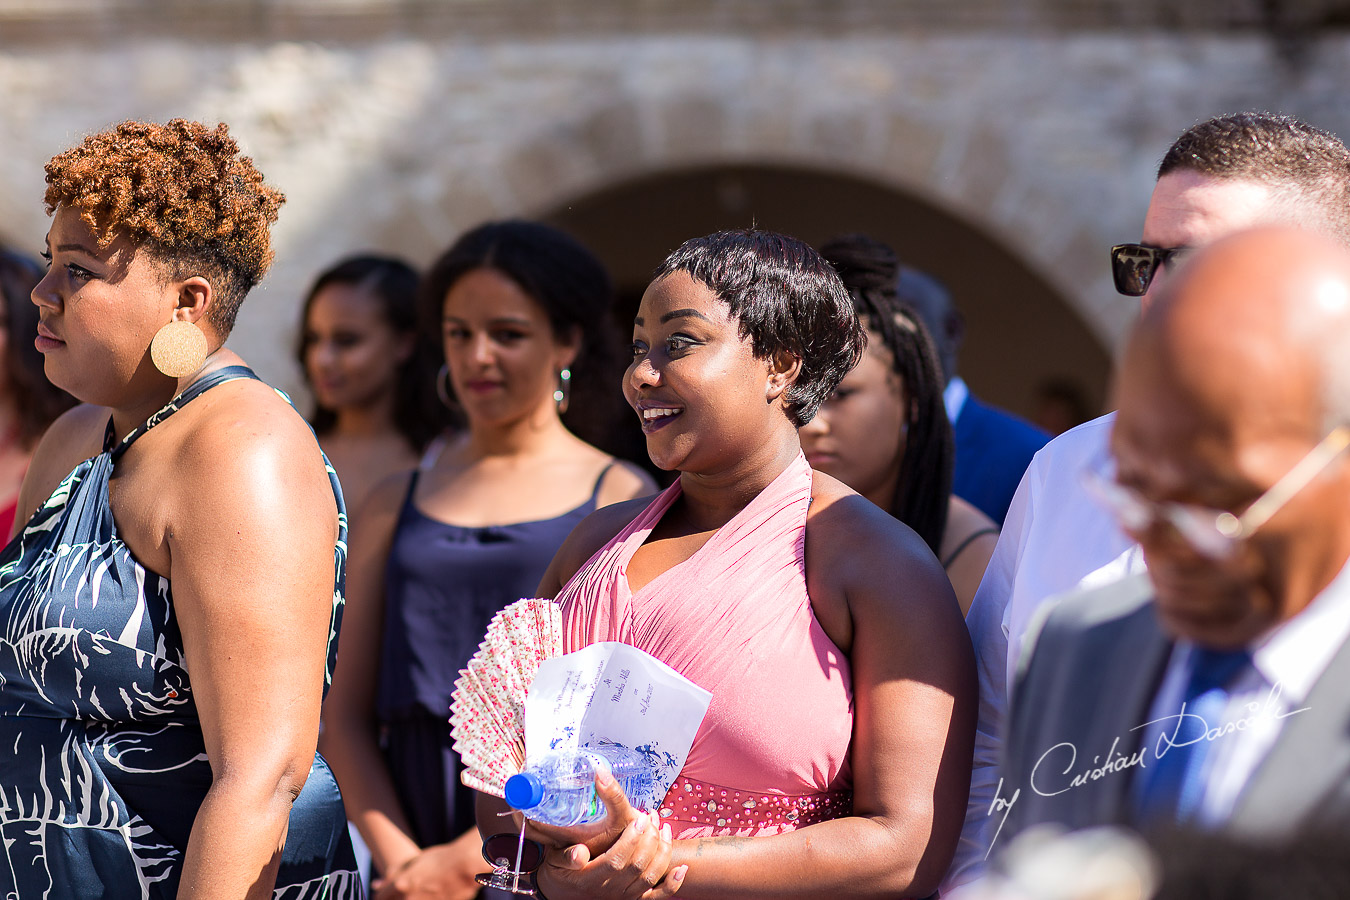 Moments with the guests smiling captured at a wedding at Minthis Hills in Cyprus, by Cristian Dascalu.